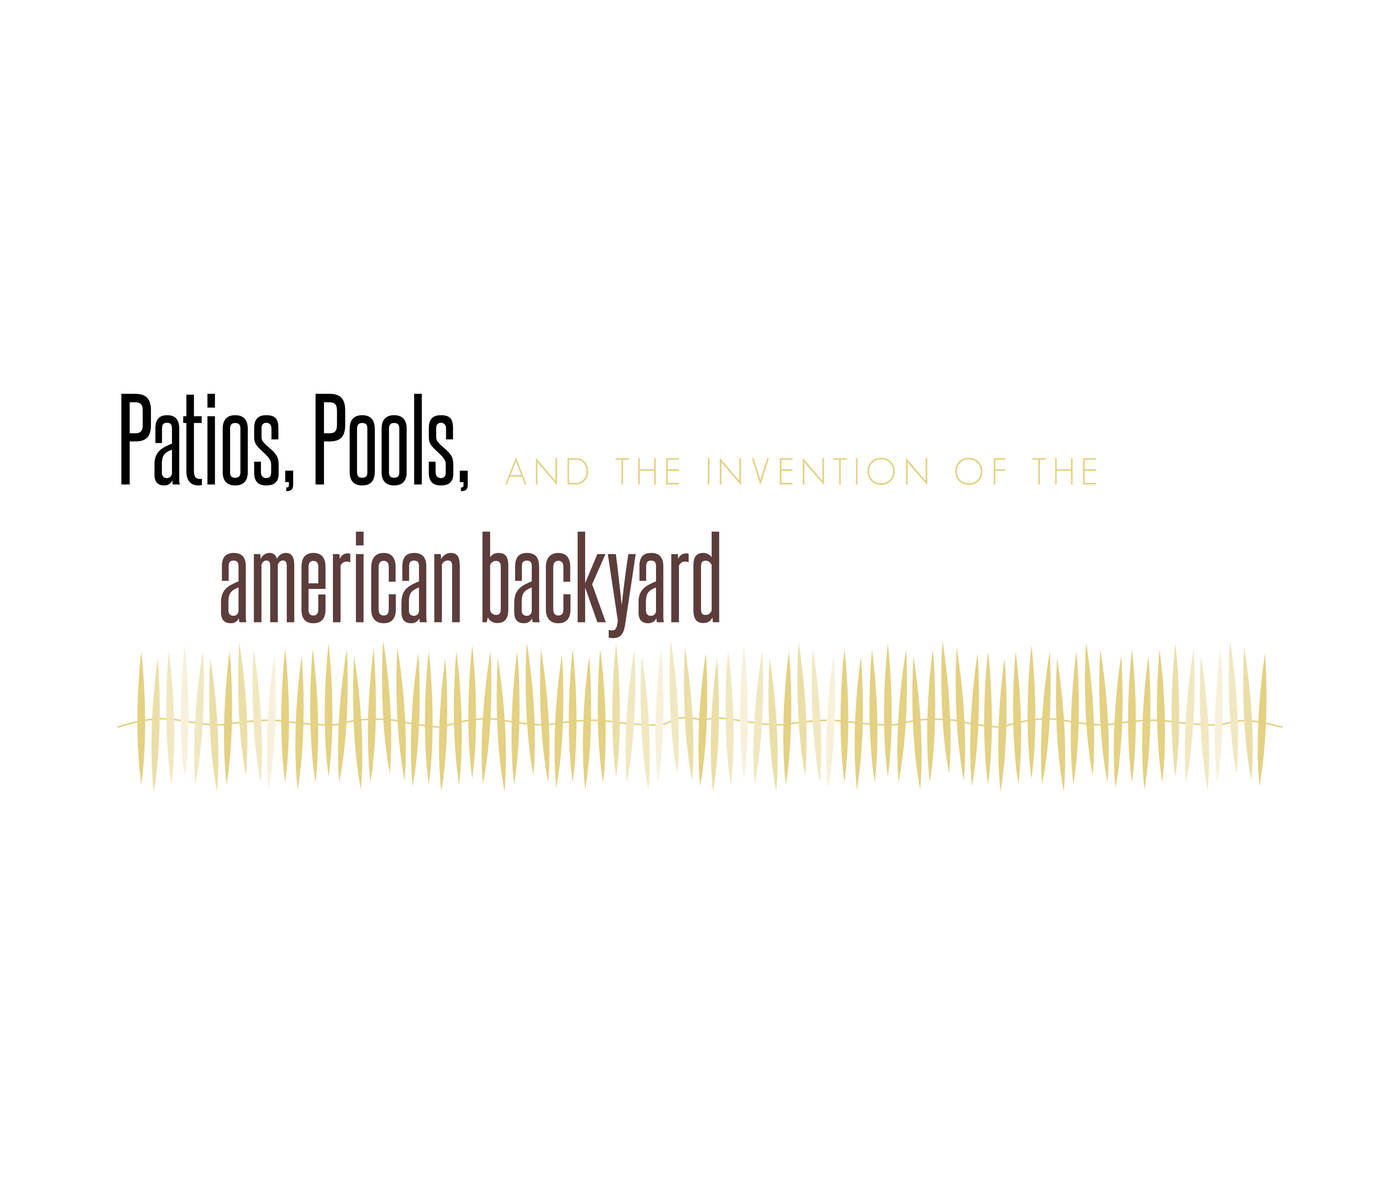 Pools, Patios, And The Invention Of The American Backyard By Nathalie  Nelson At Coroflot.com